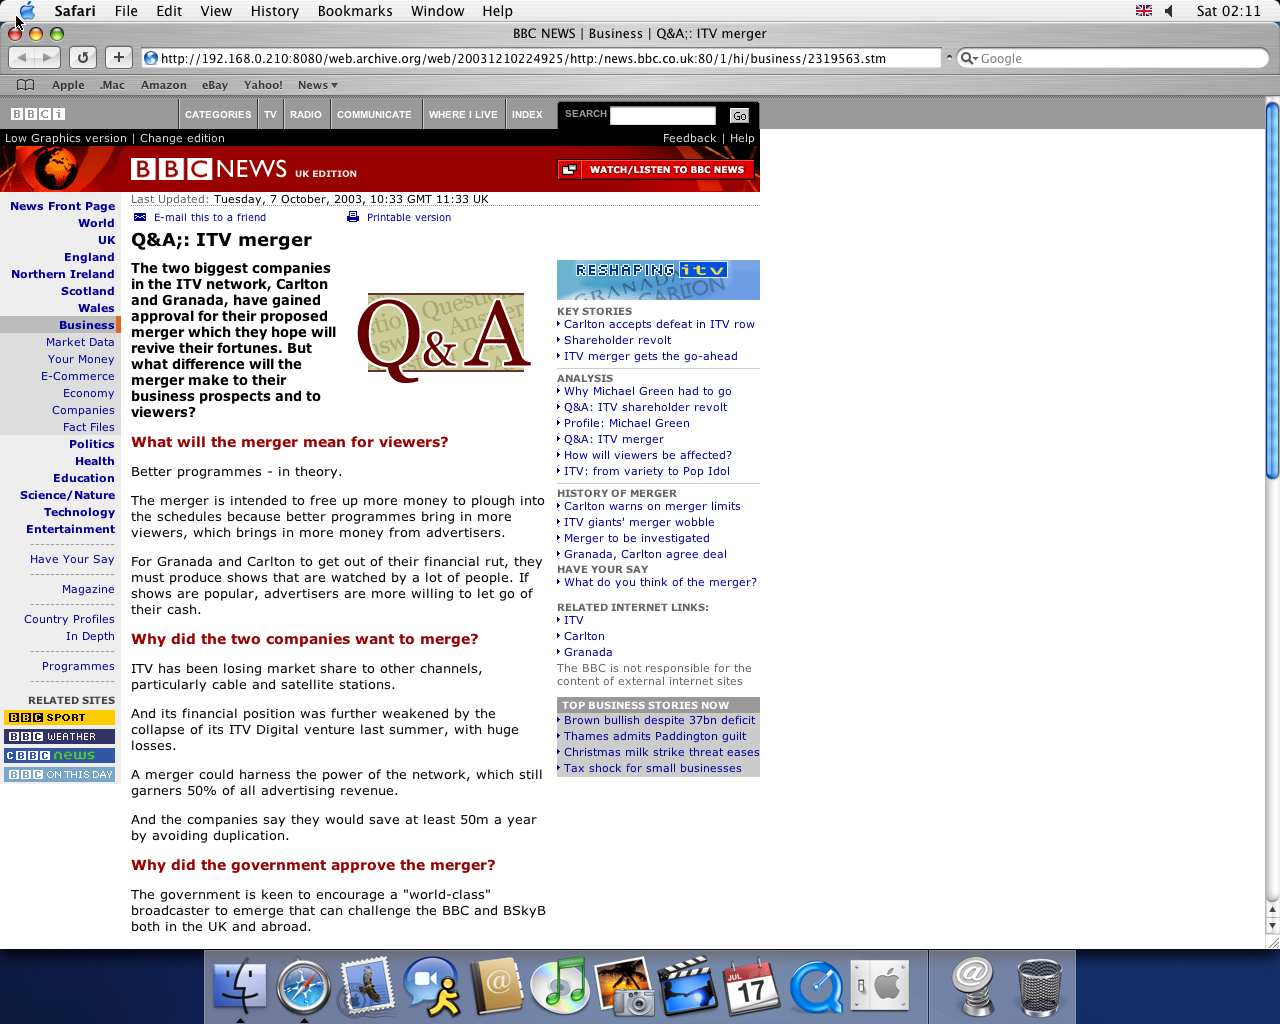 OS X 10.3 PPC with Safari 1.1 displaying a page from BBC News archived at December 10, 2003 at 22:49:25